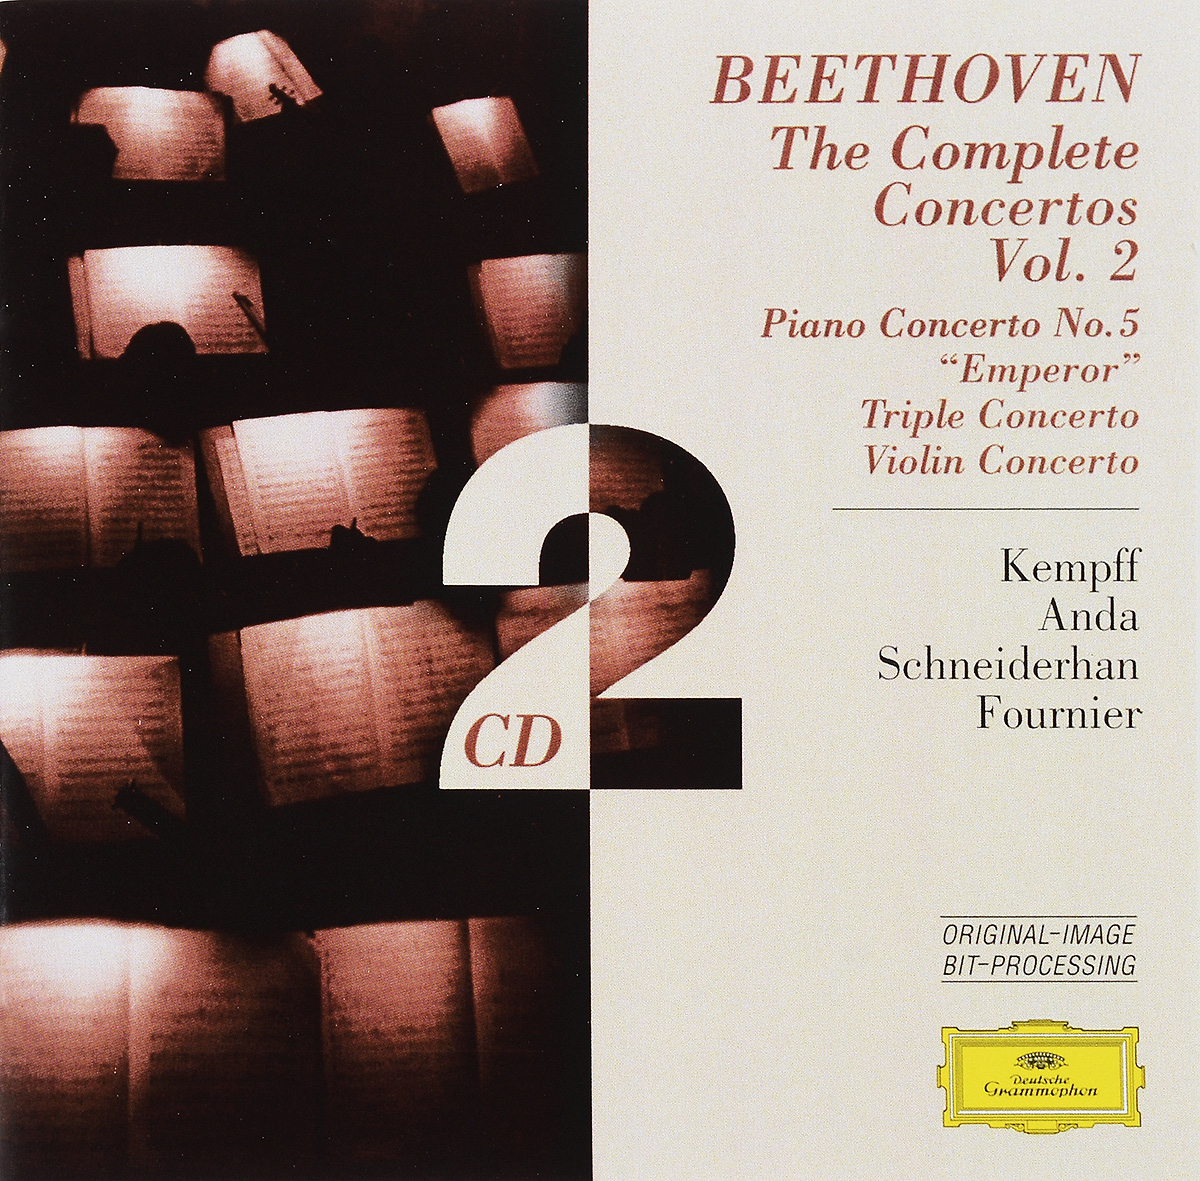 Beethoven. The Complete Concertos. Volume 2 navarro y the complete aliens omnimbus volume four